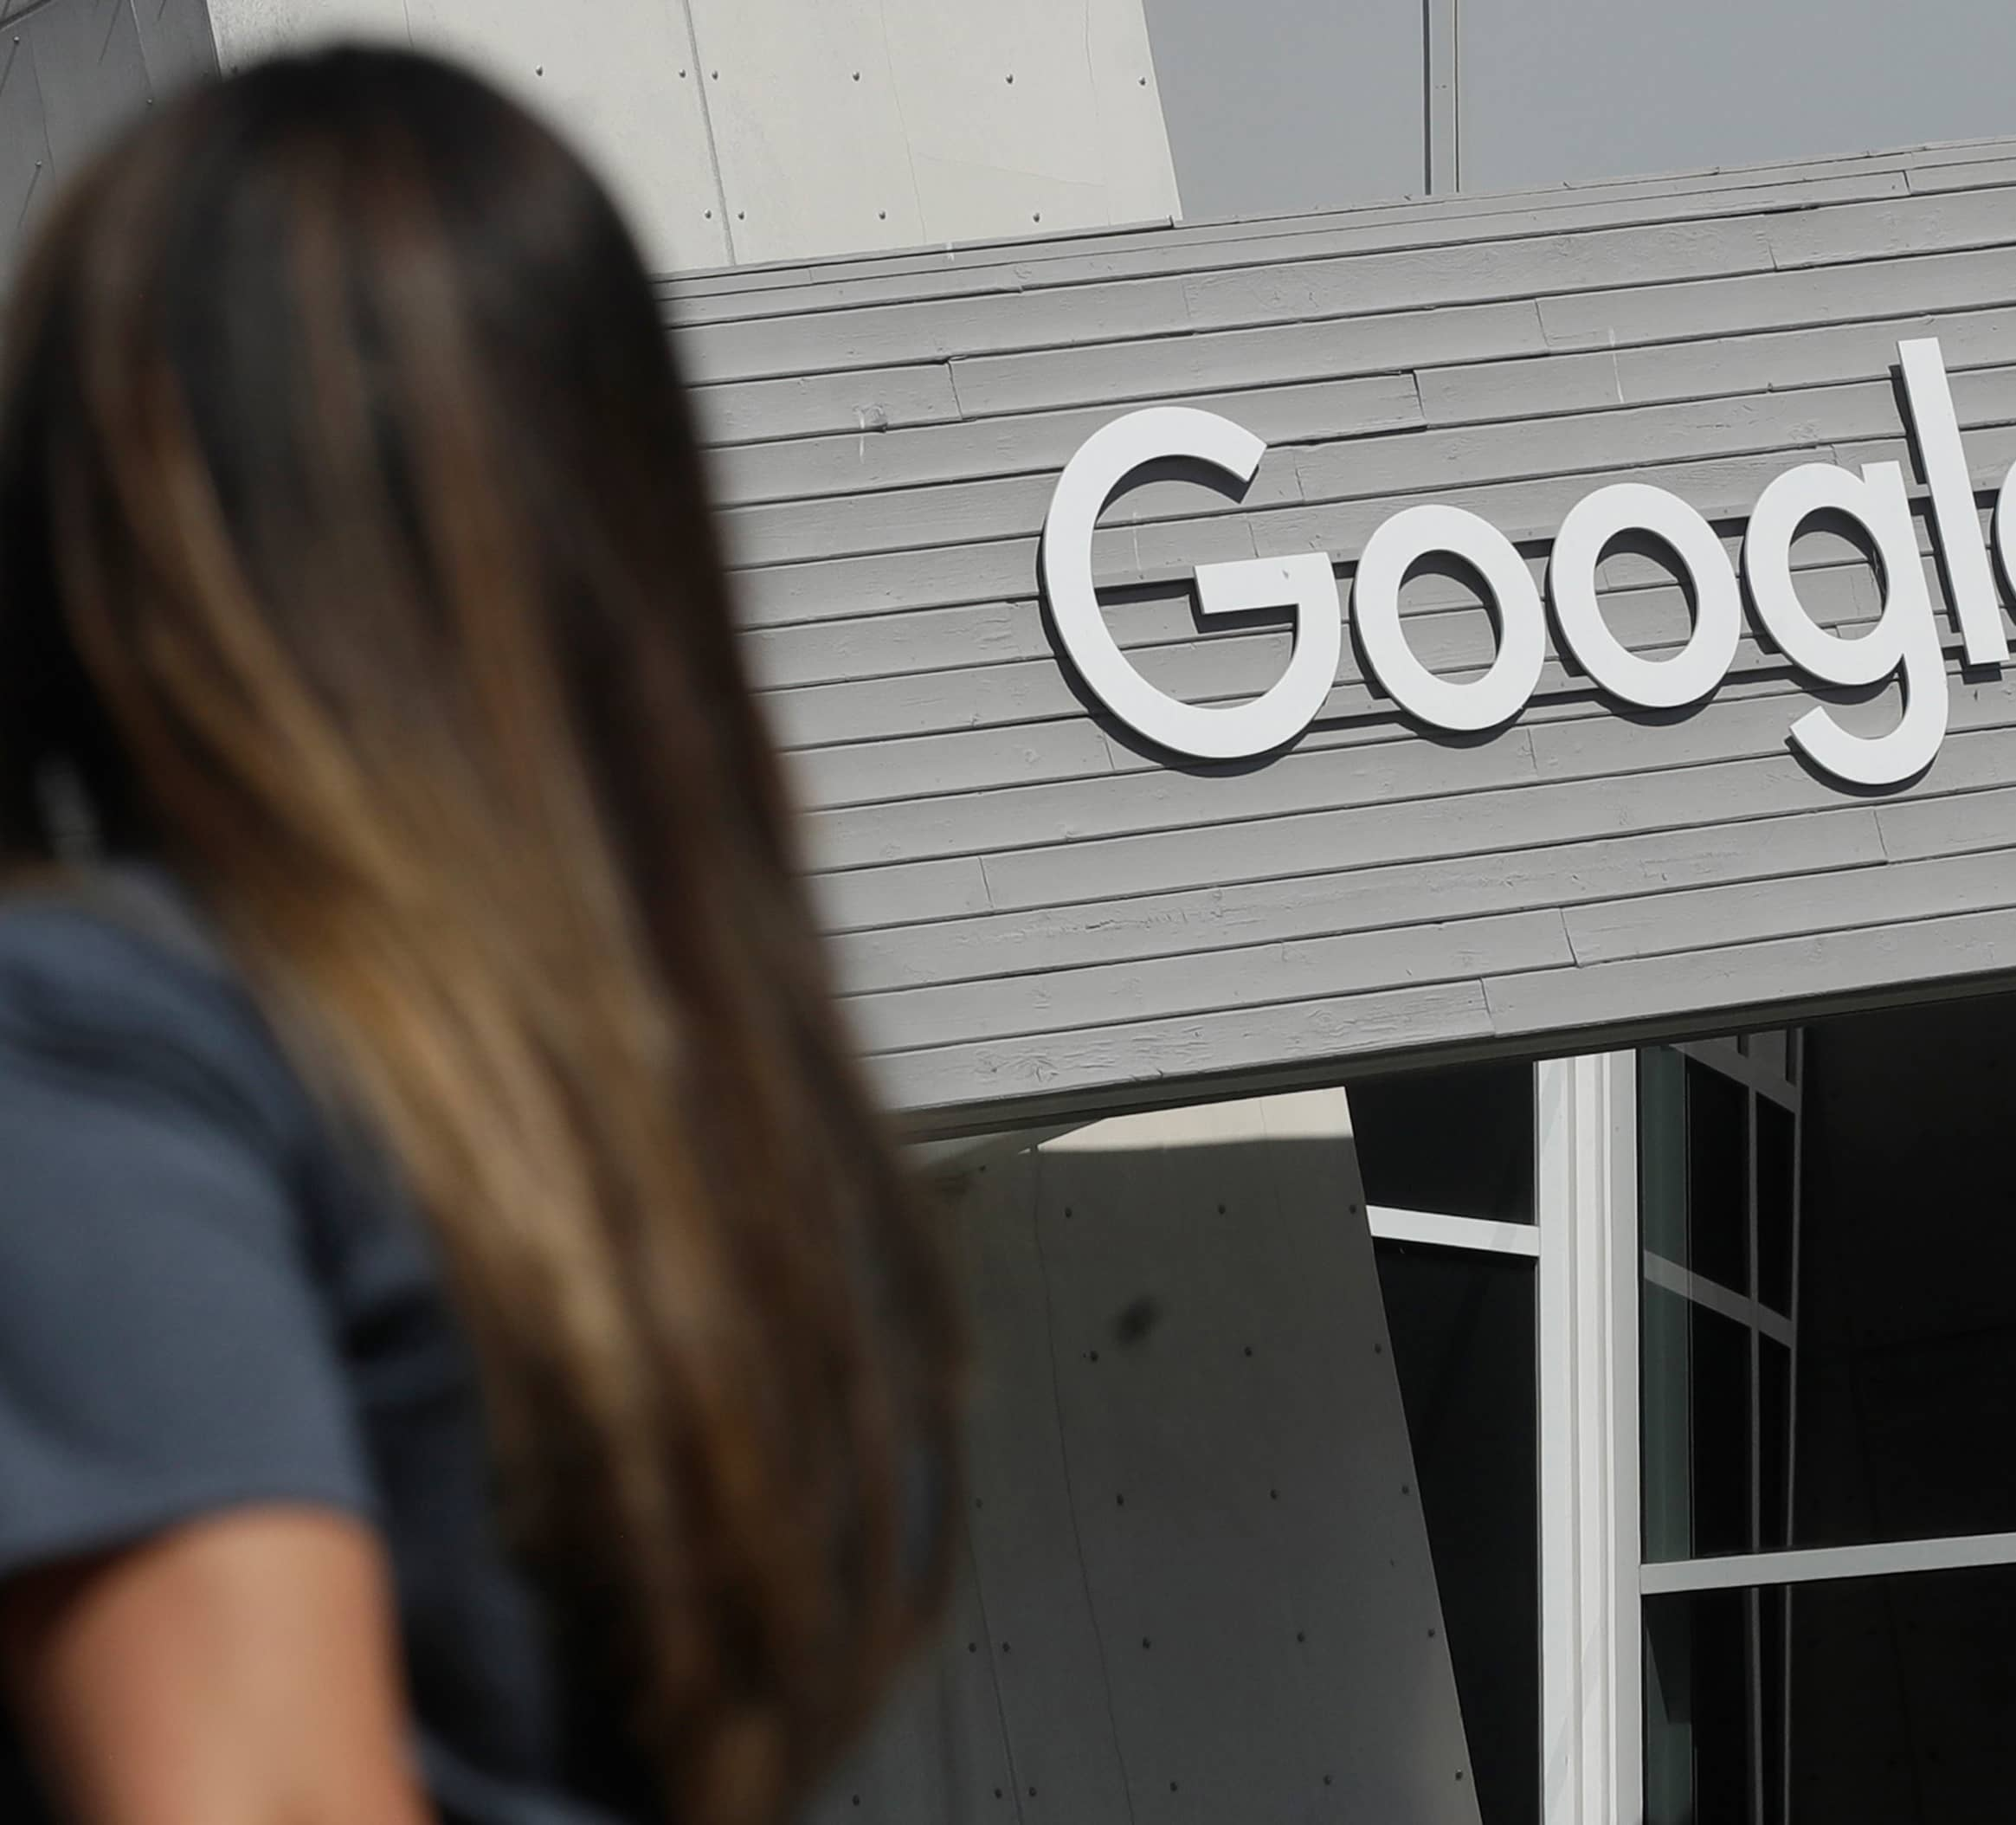 US JUDGE DISMISSES NEW MEXICO PRIVACY CLAIMS AGAINST GOOGLE